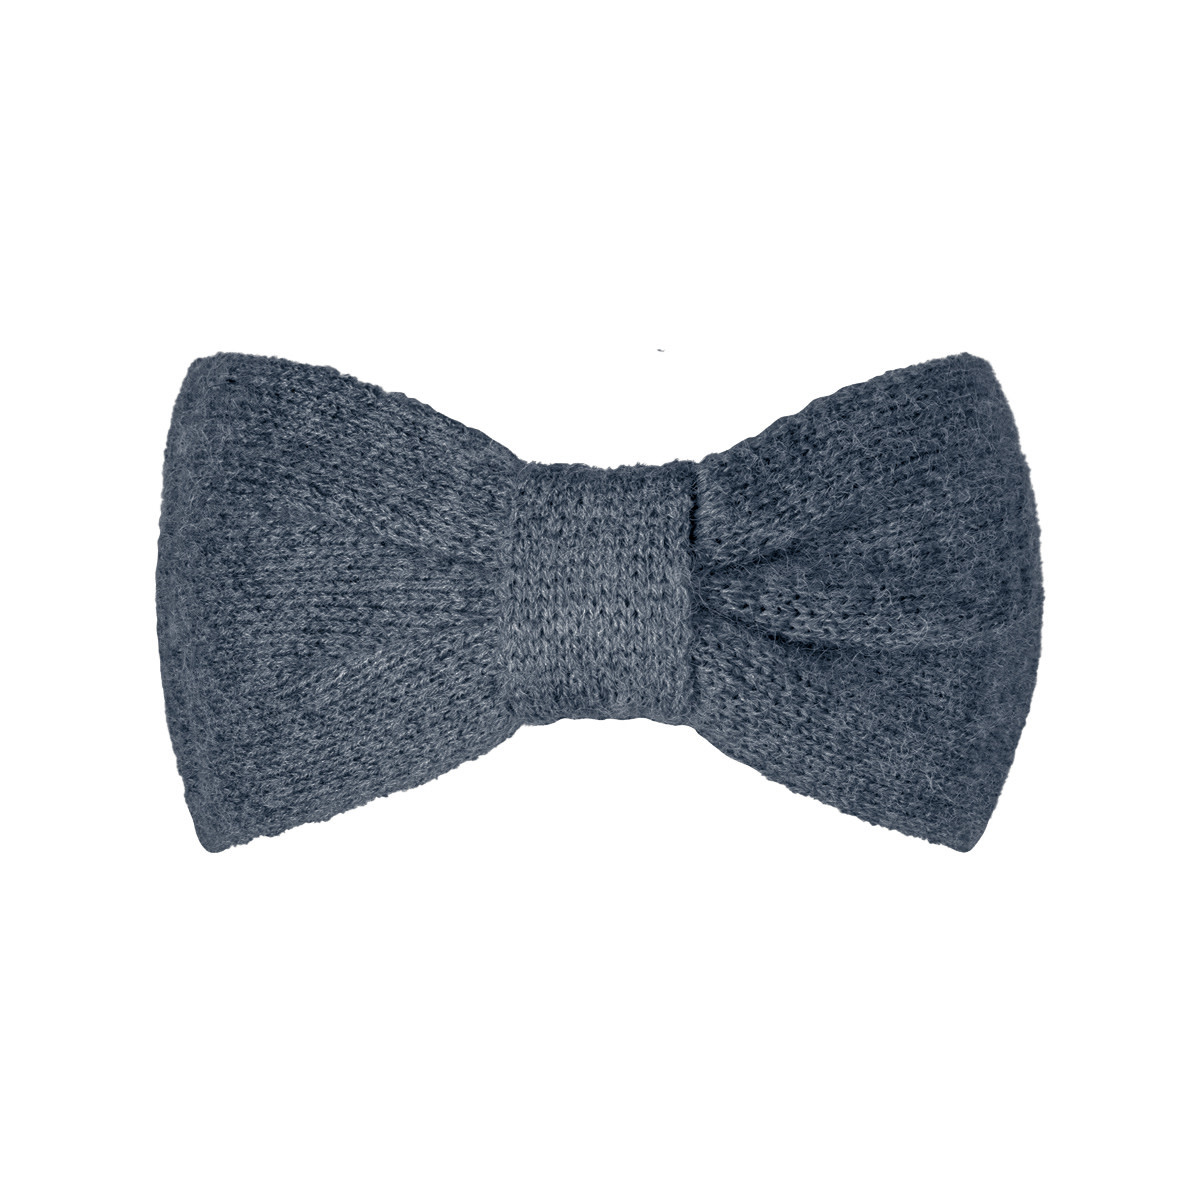 With love Headband cozy bow - dark grey